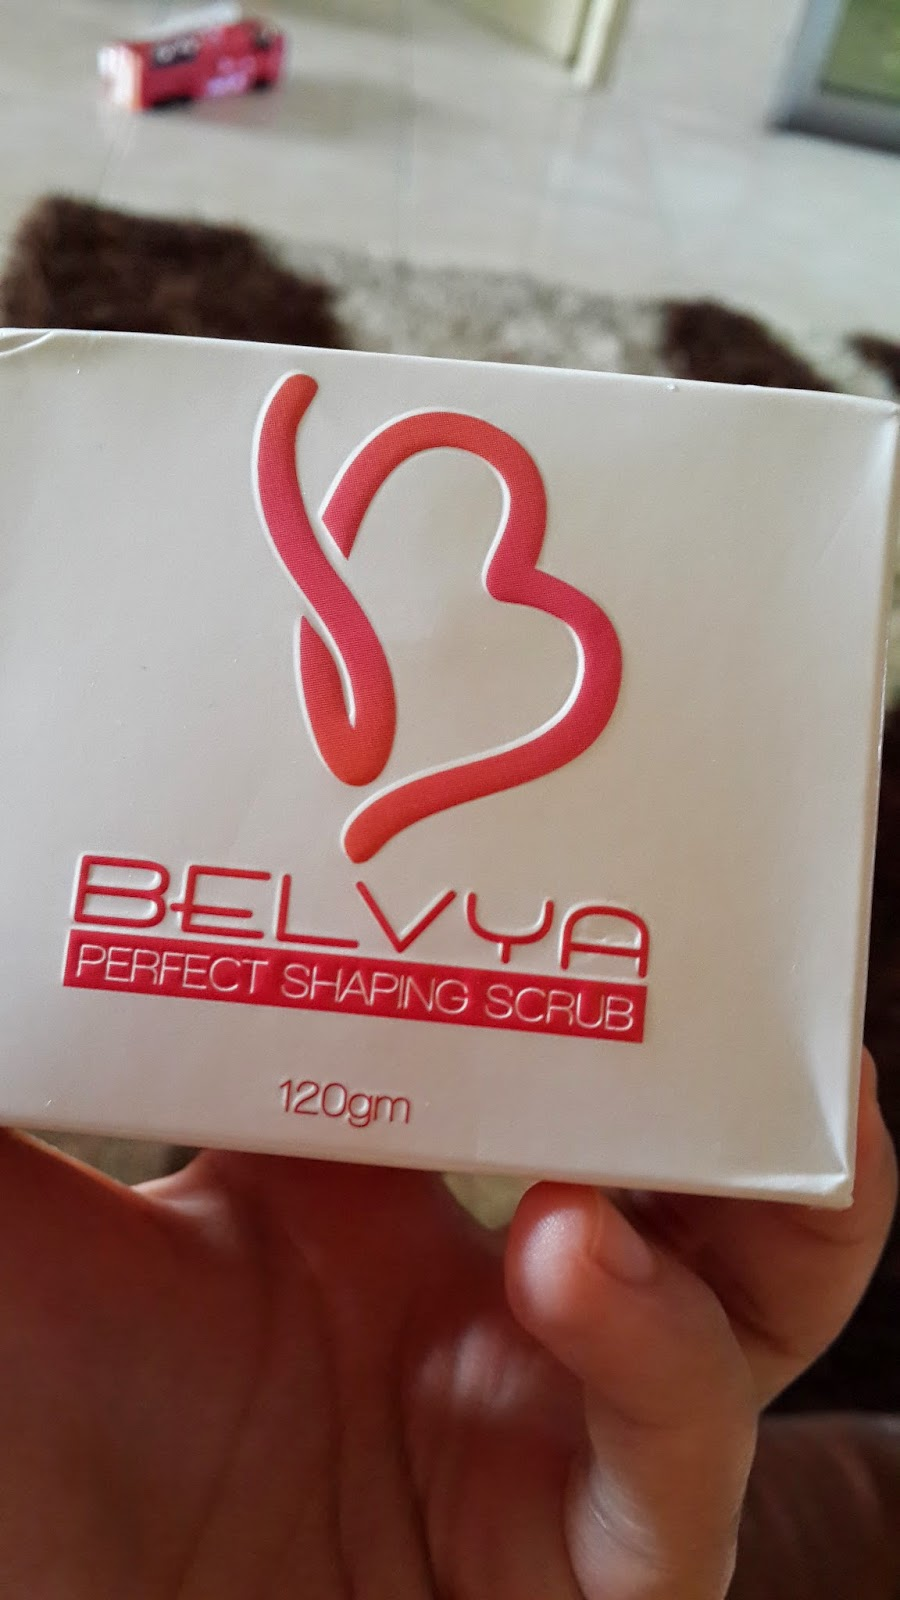 Review Belvya perfect shaping scrub